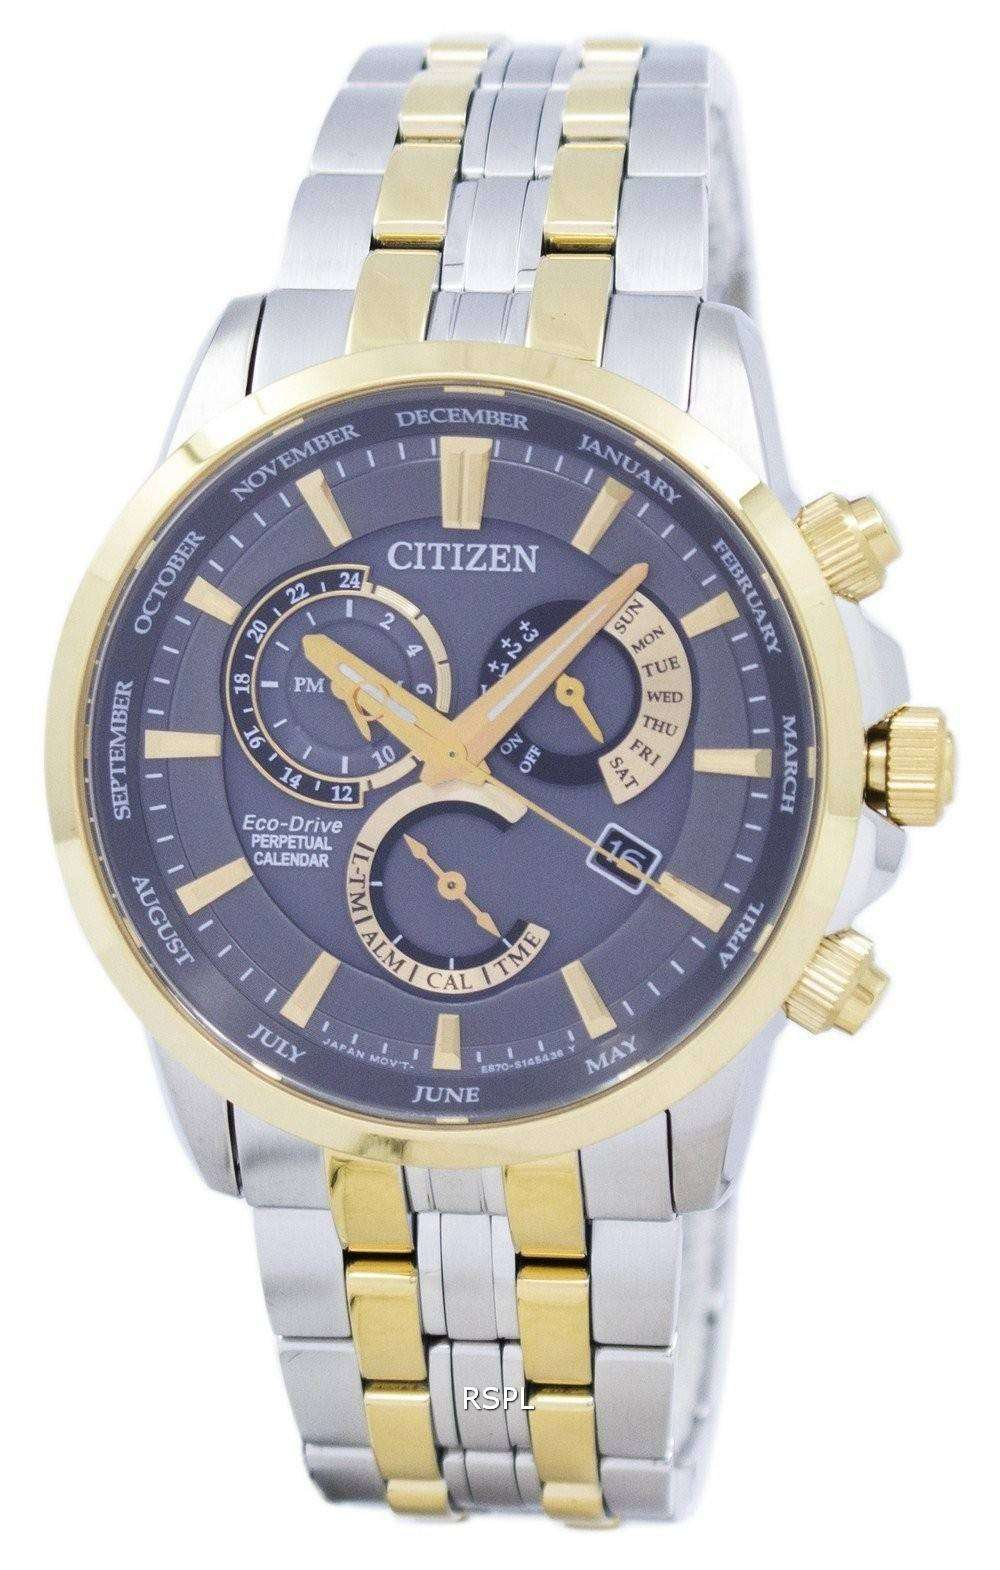 citizen eco drive chronograph perpetual calendar alarm bl8144 89h mens watch downunderwatches